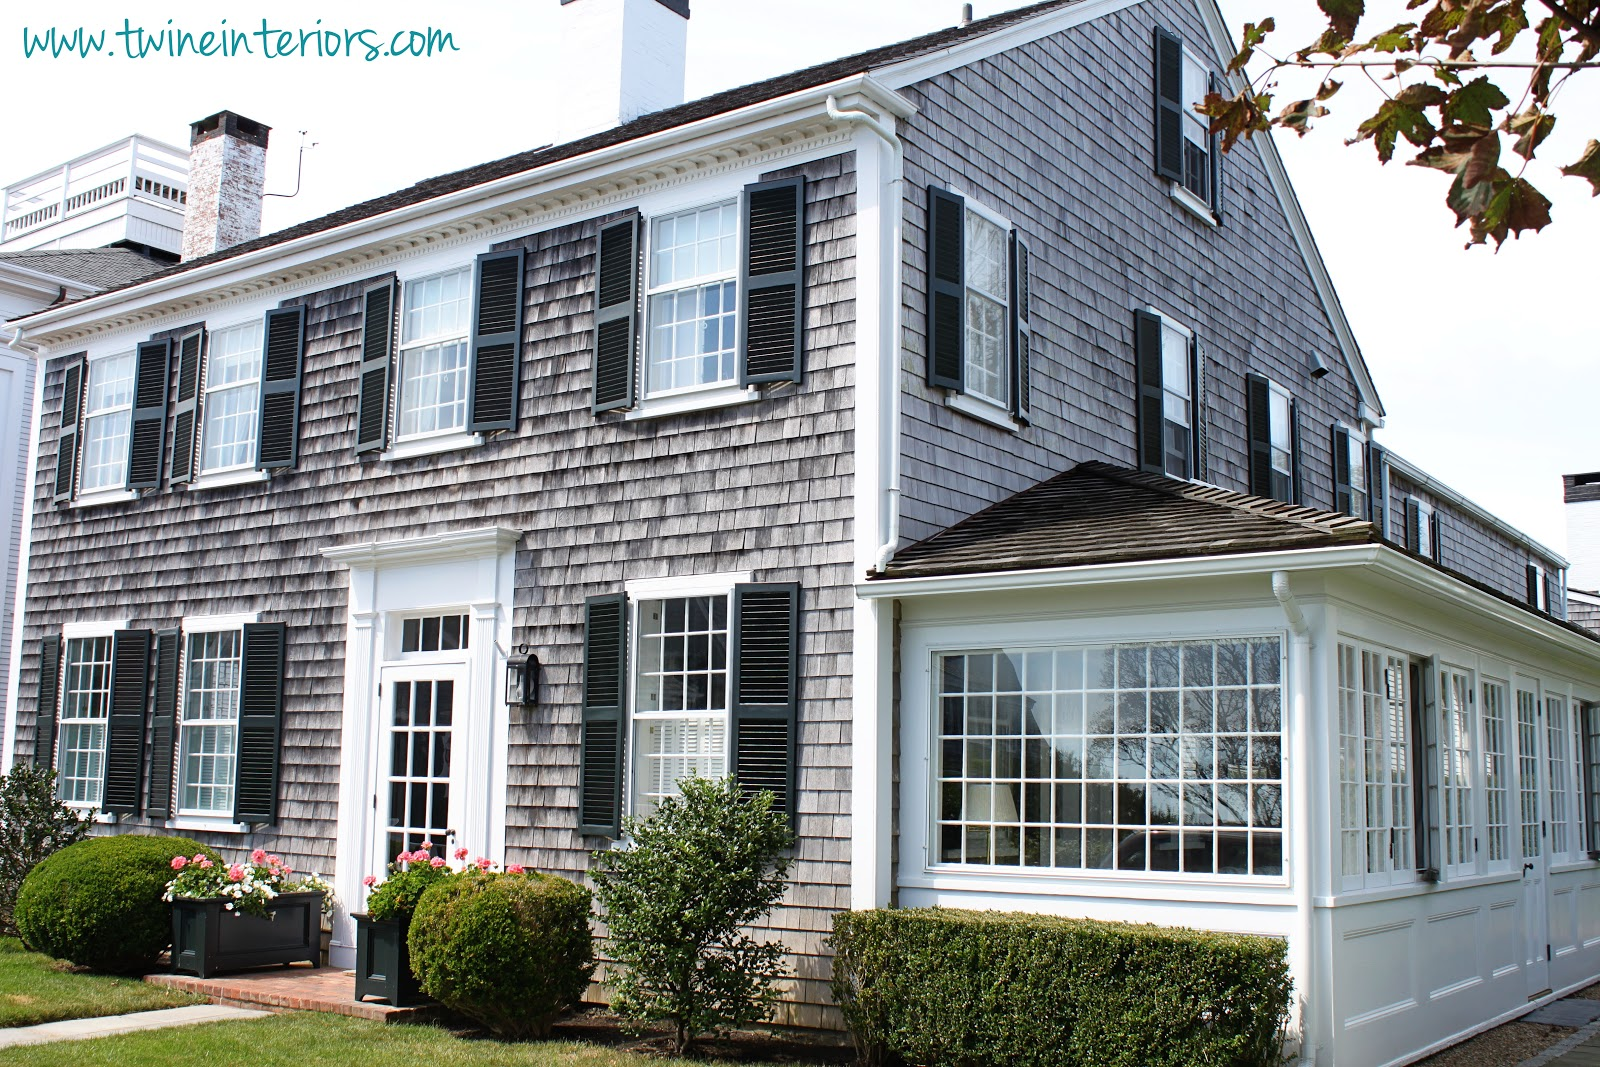 Twine the cottages of martha 39 s vineyard - What is a cape cod style house ...